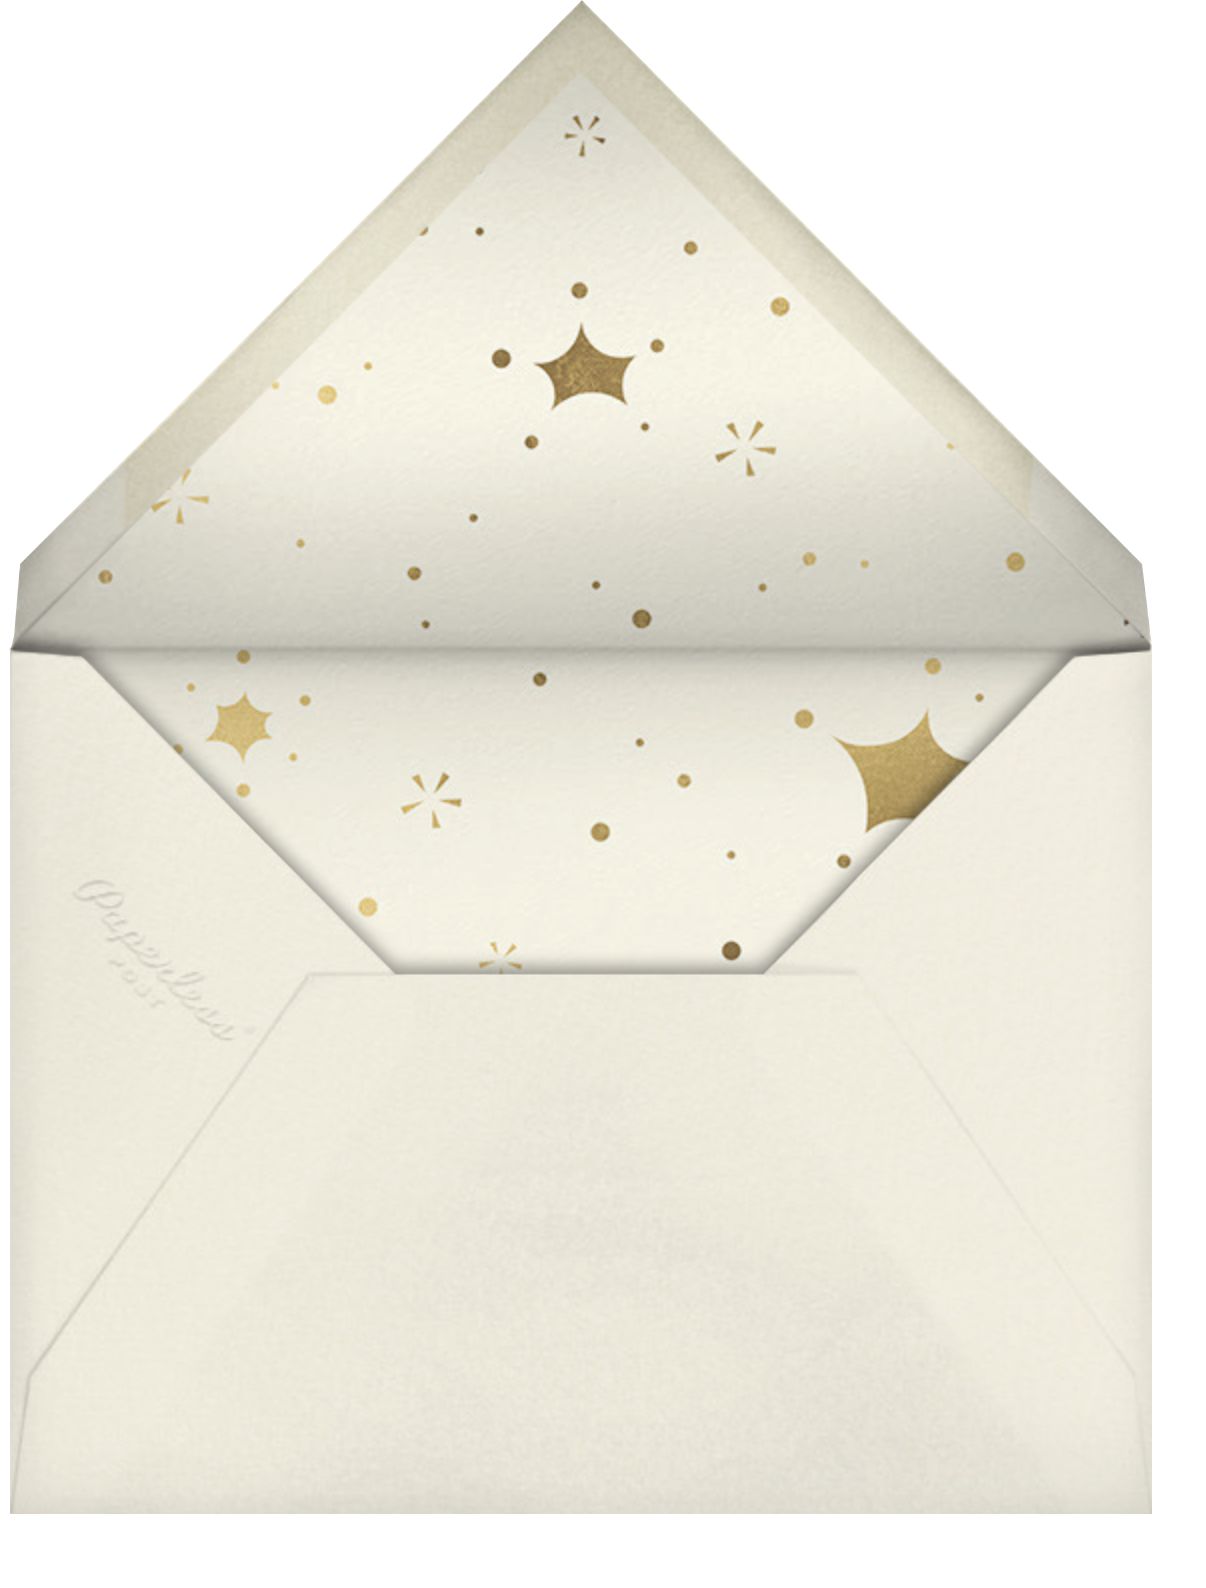 Bursting with Joy - Cream - Paperless Post - Company holiday cards - envelope back